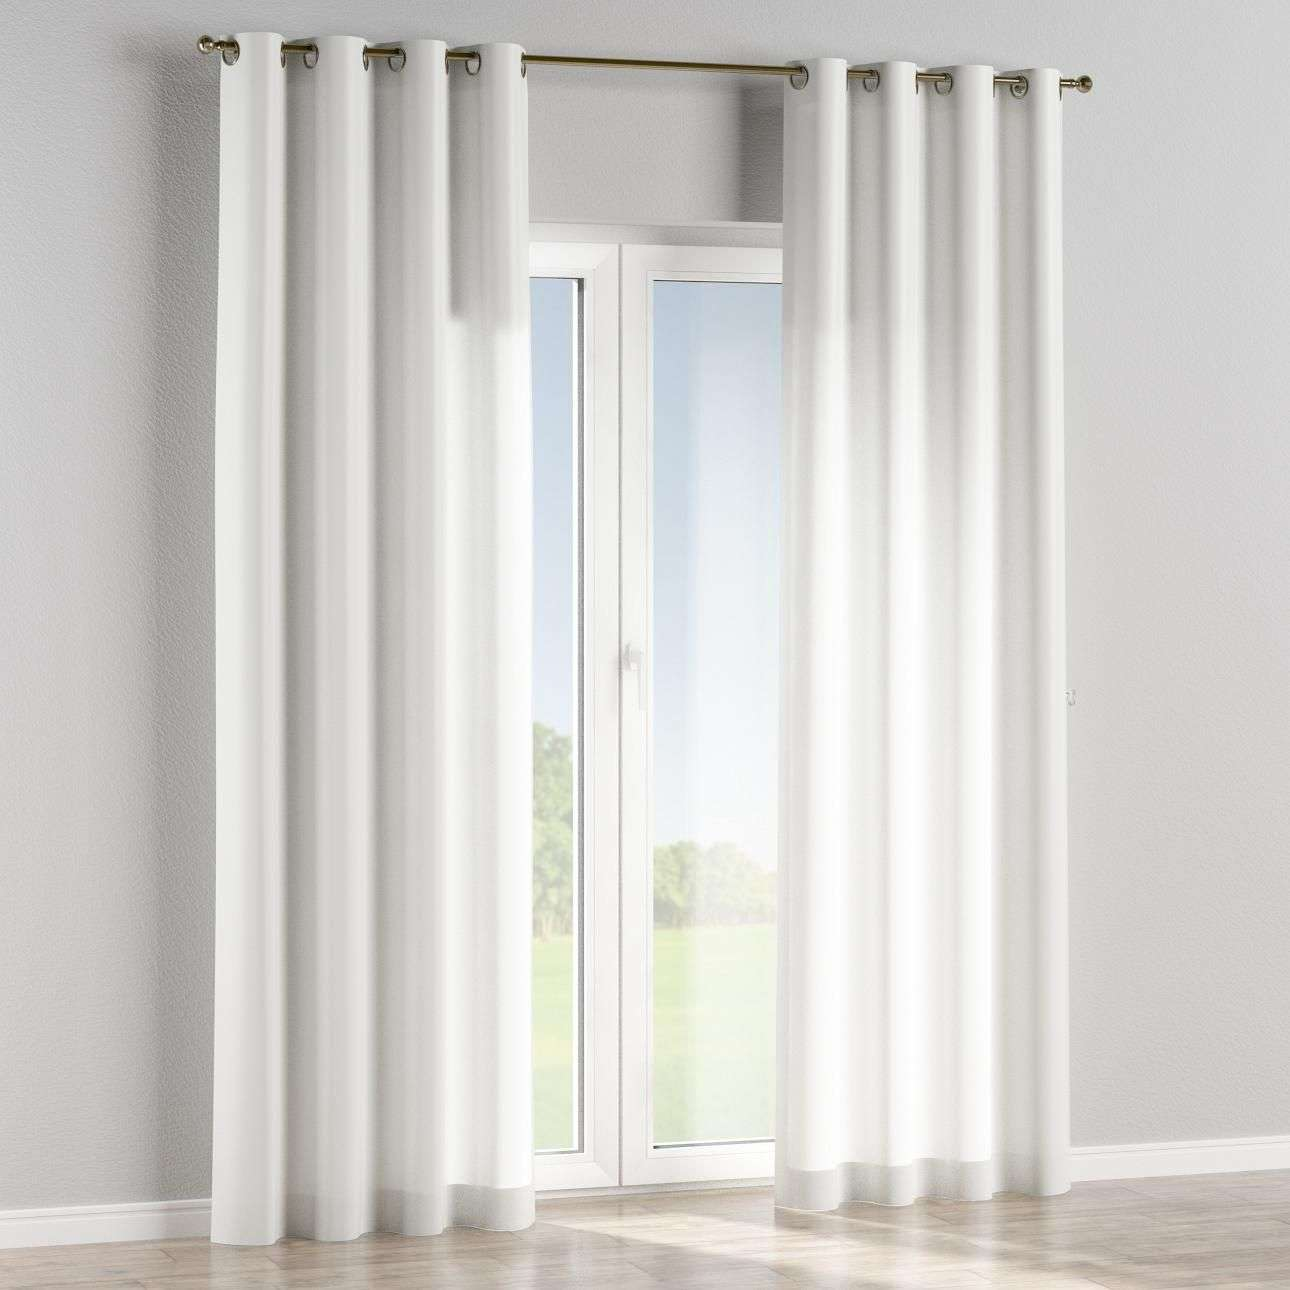 Eyelet curtains in collection Rustica, fabric: 140-85